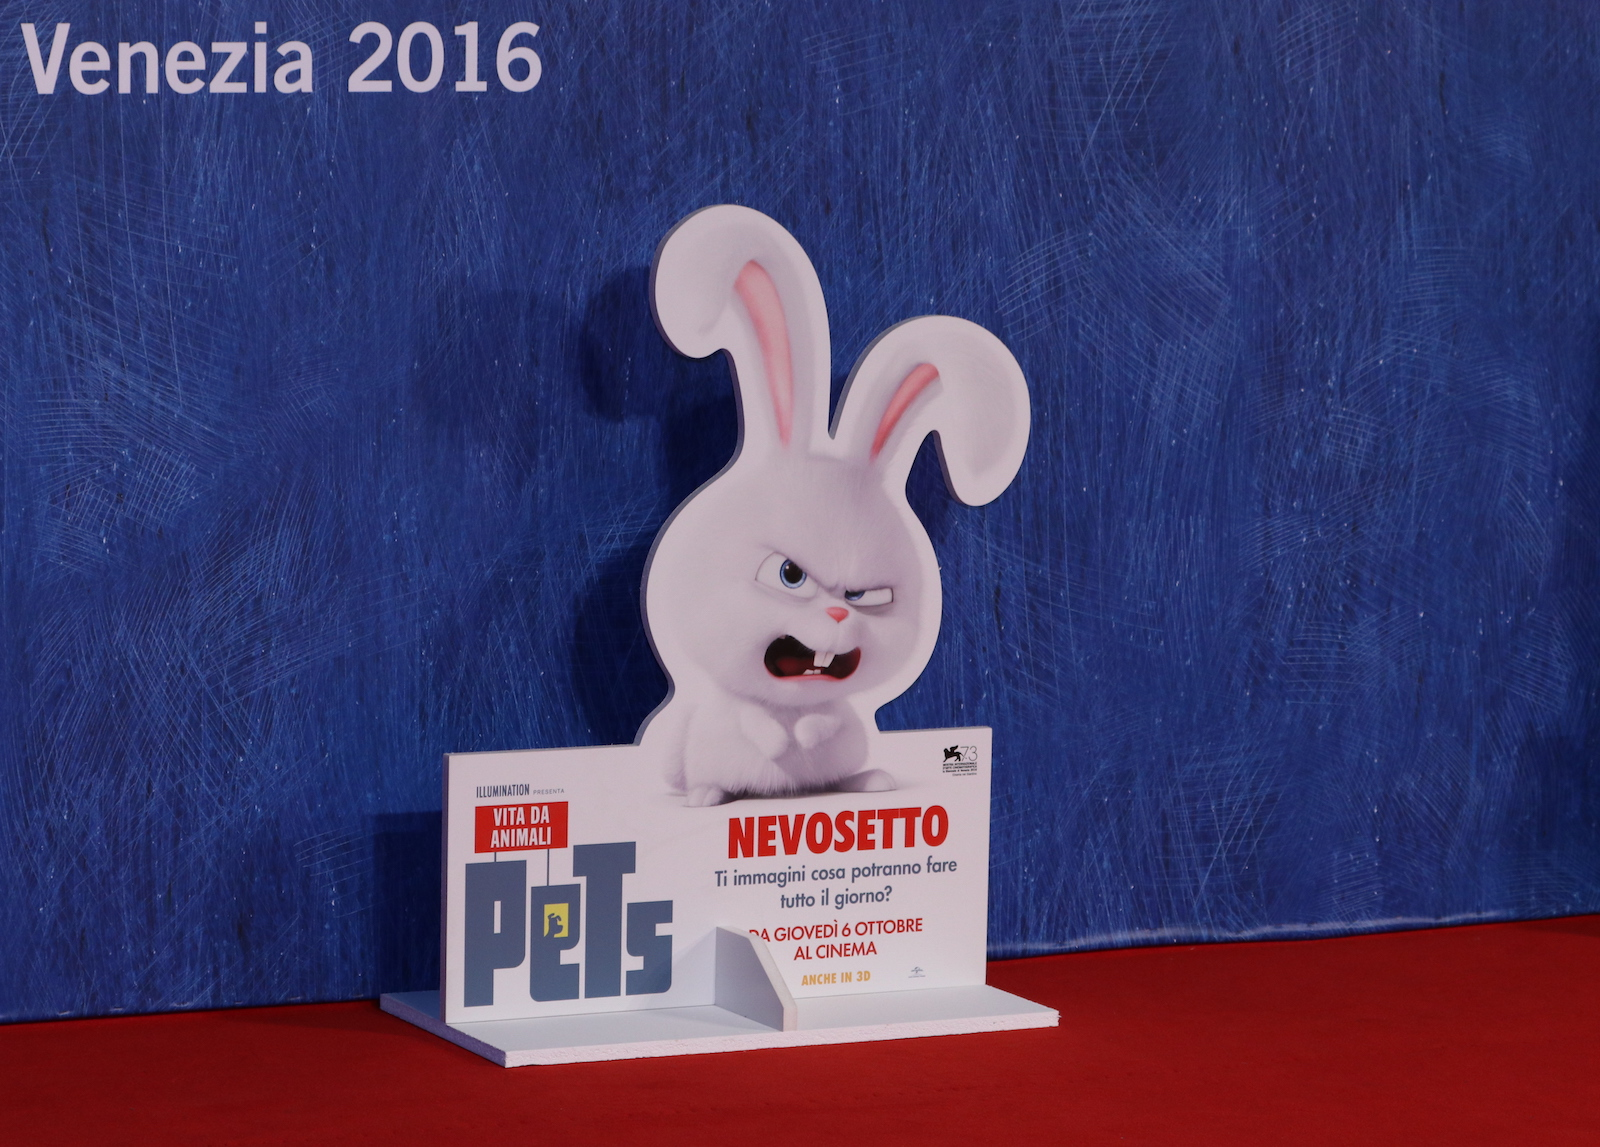 Venezia 2016: Nevosetto sul red carpet di Pets